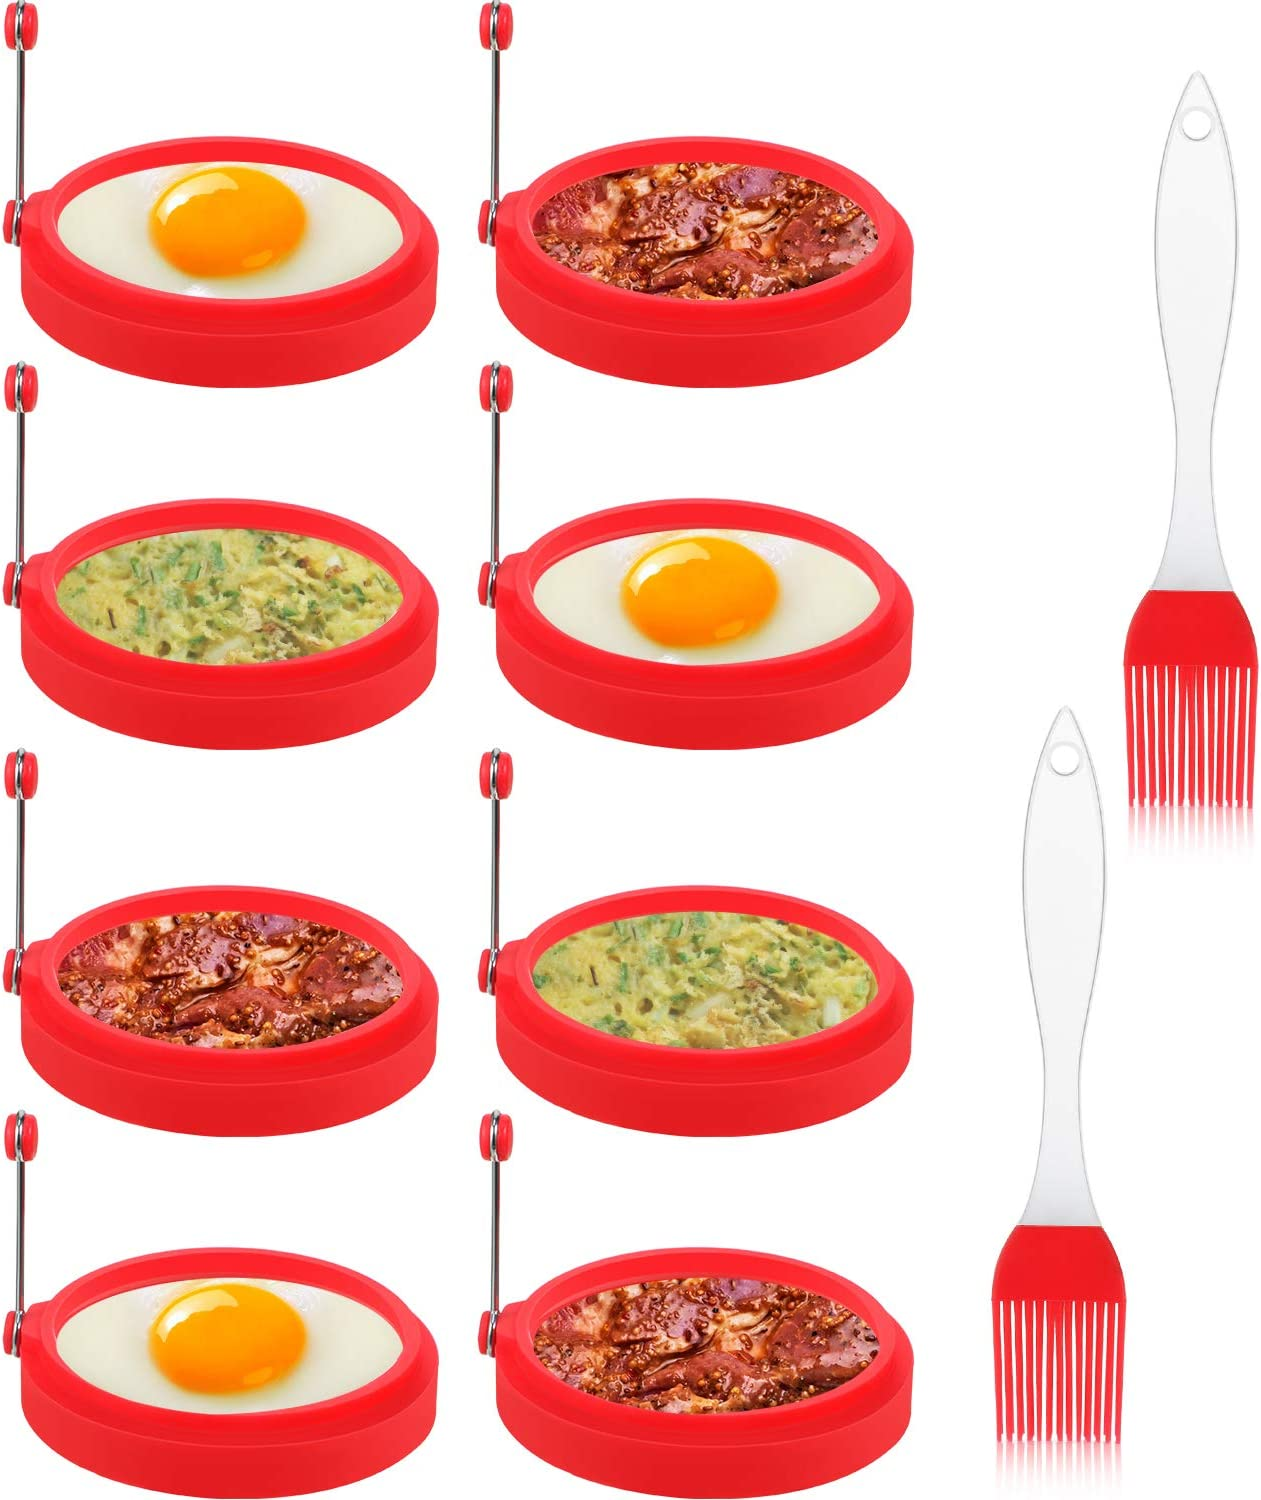 8 Packs Silicone Egg Rings, 4 Inch Food Grade Egg Cooking Rings, Non Stick Fried Egg Ring Mold, Pancake Breakfast Sandwiches, with 2 Silicone Brushes (Red)